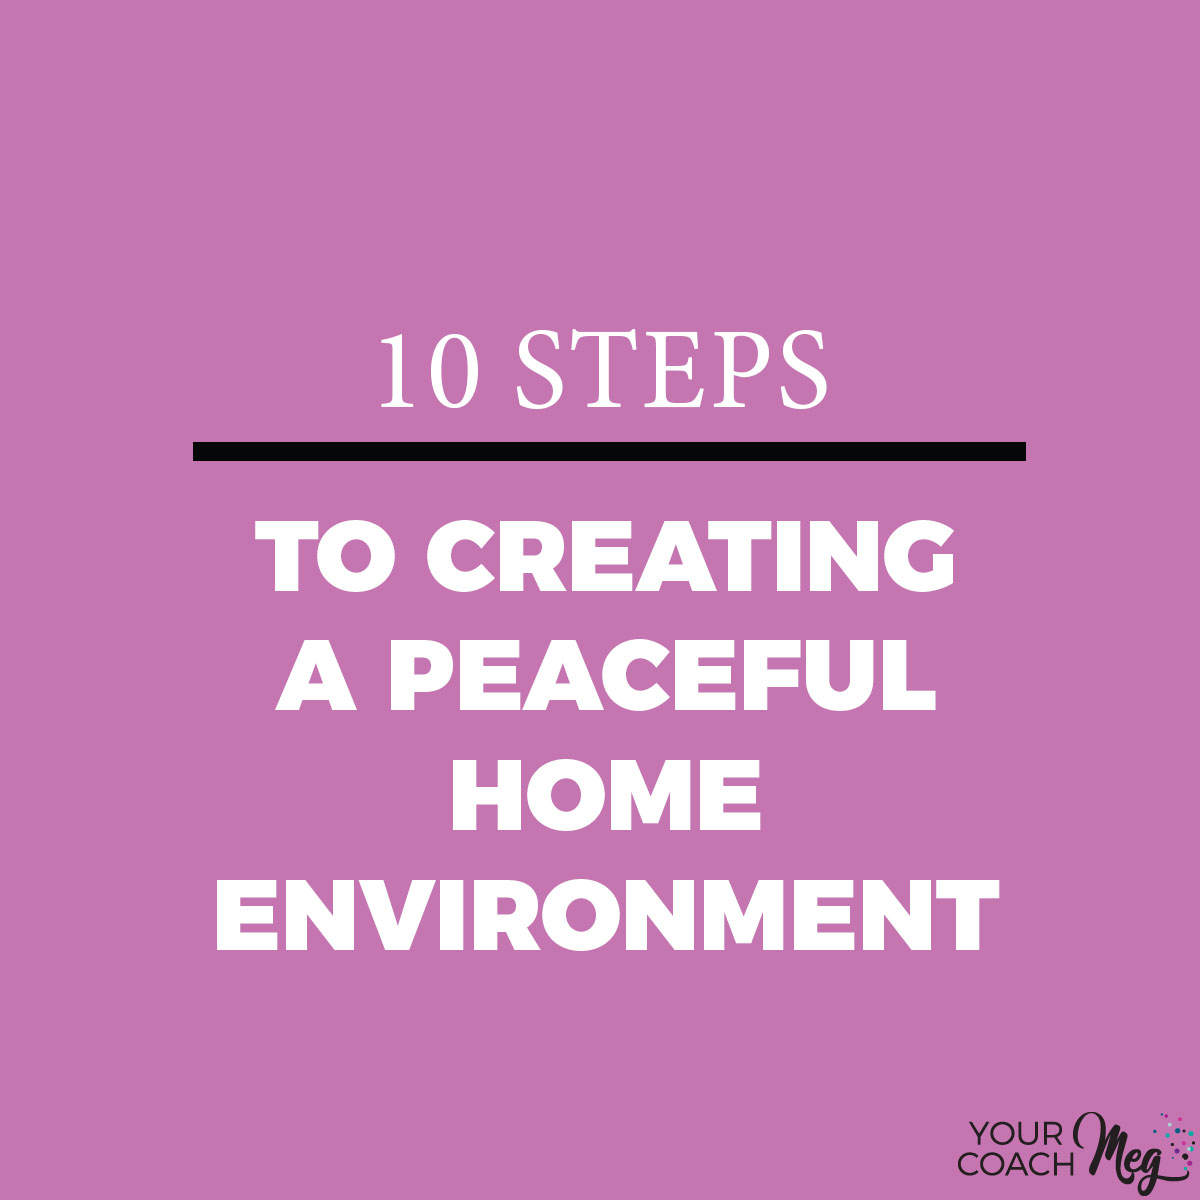 10 steps to a peaceful home environment